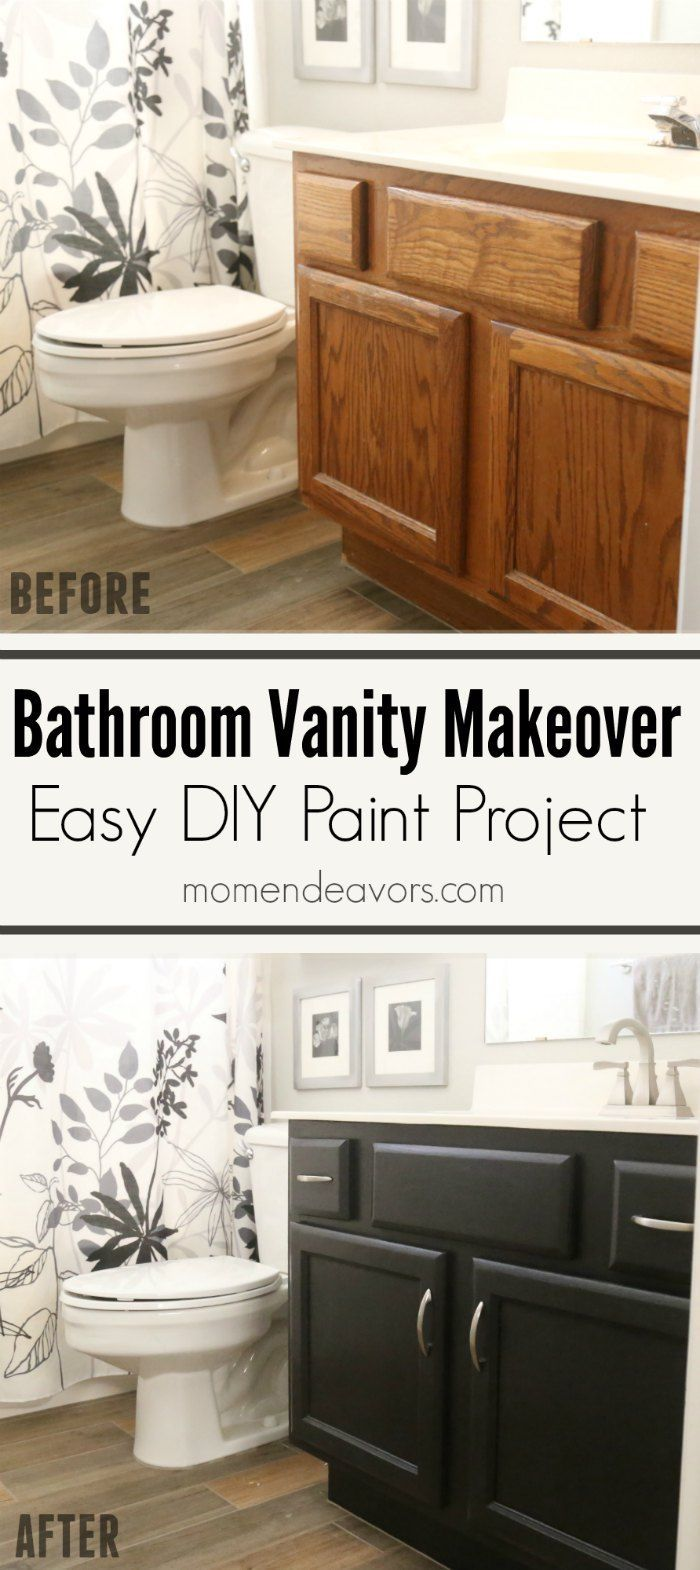 Bathroom Vanity Makeover U2013 Easy DIY Home Paint Project. Paint Suggestions  And Easy DIY Tutorial For Painting Bathroom Cabinets Black With Paint From  ...